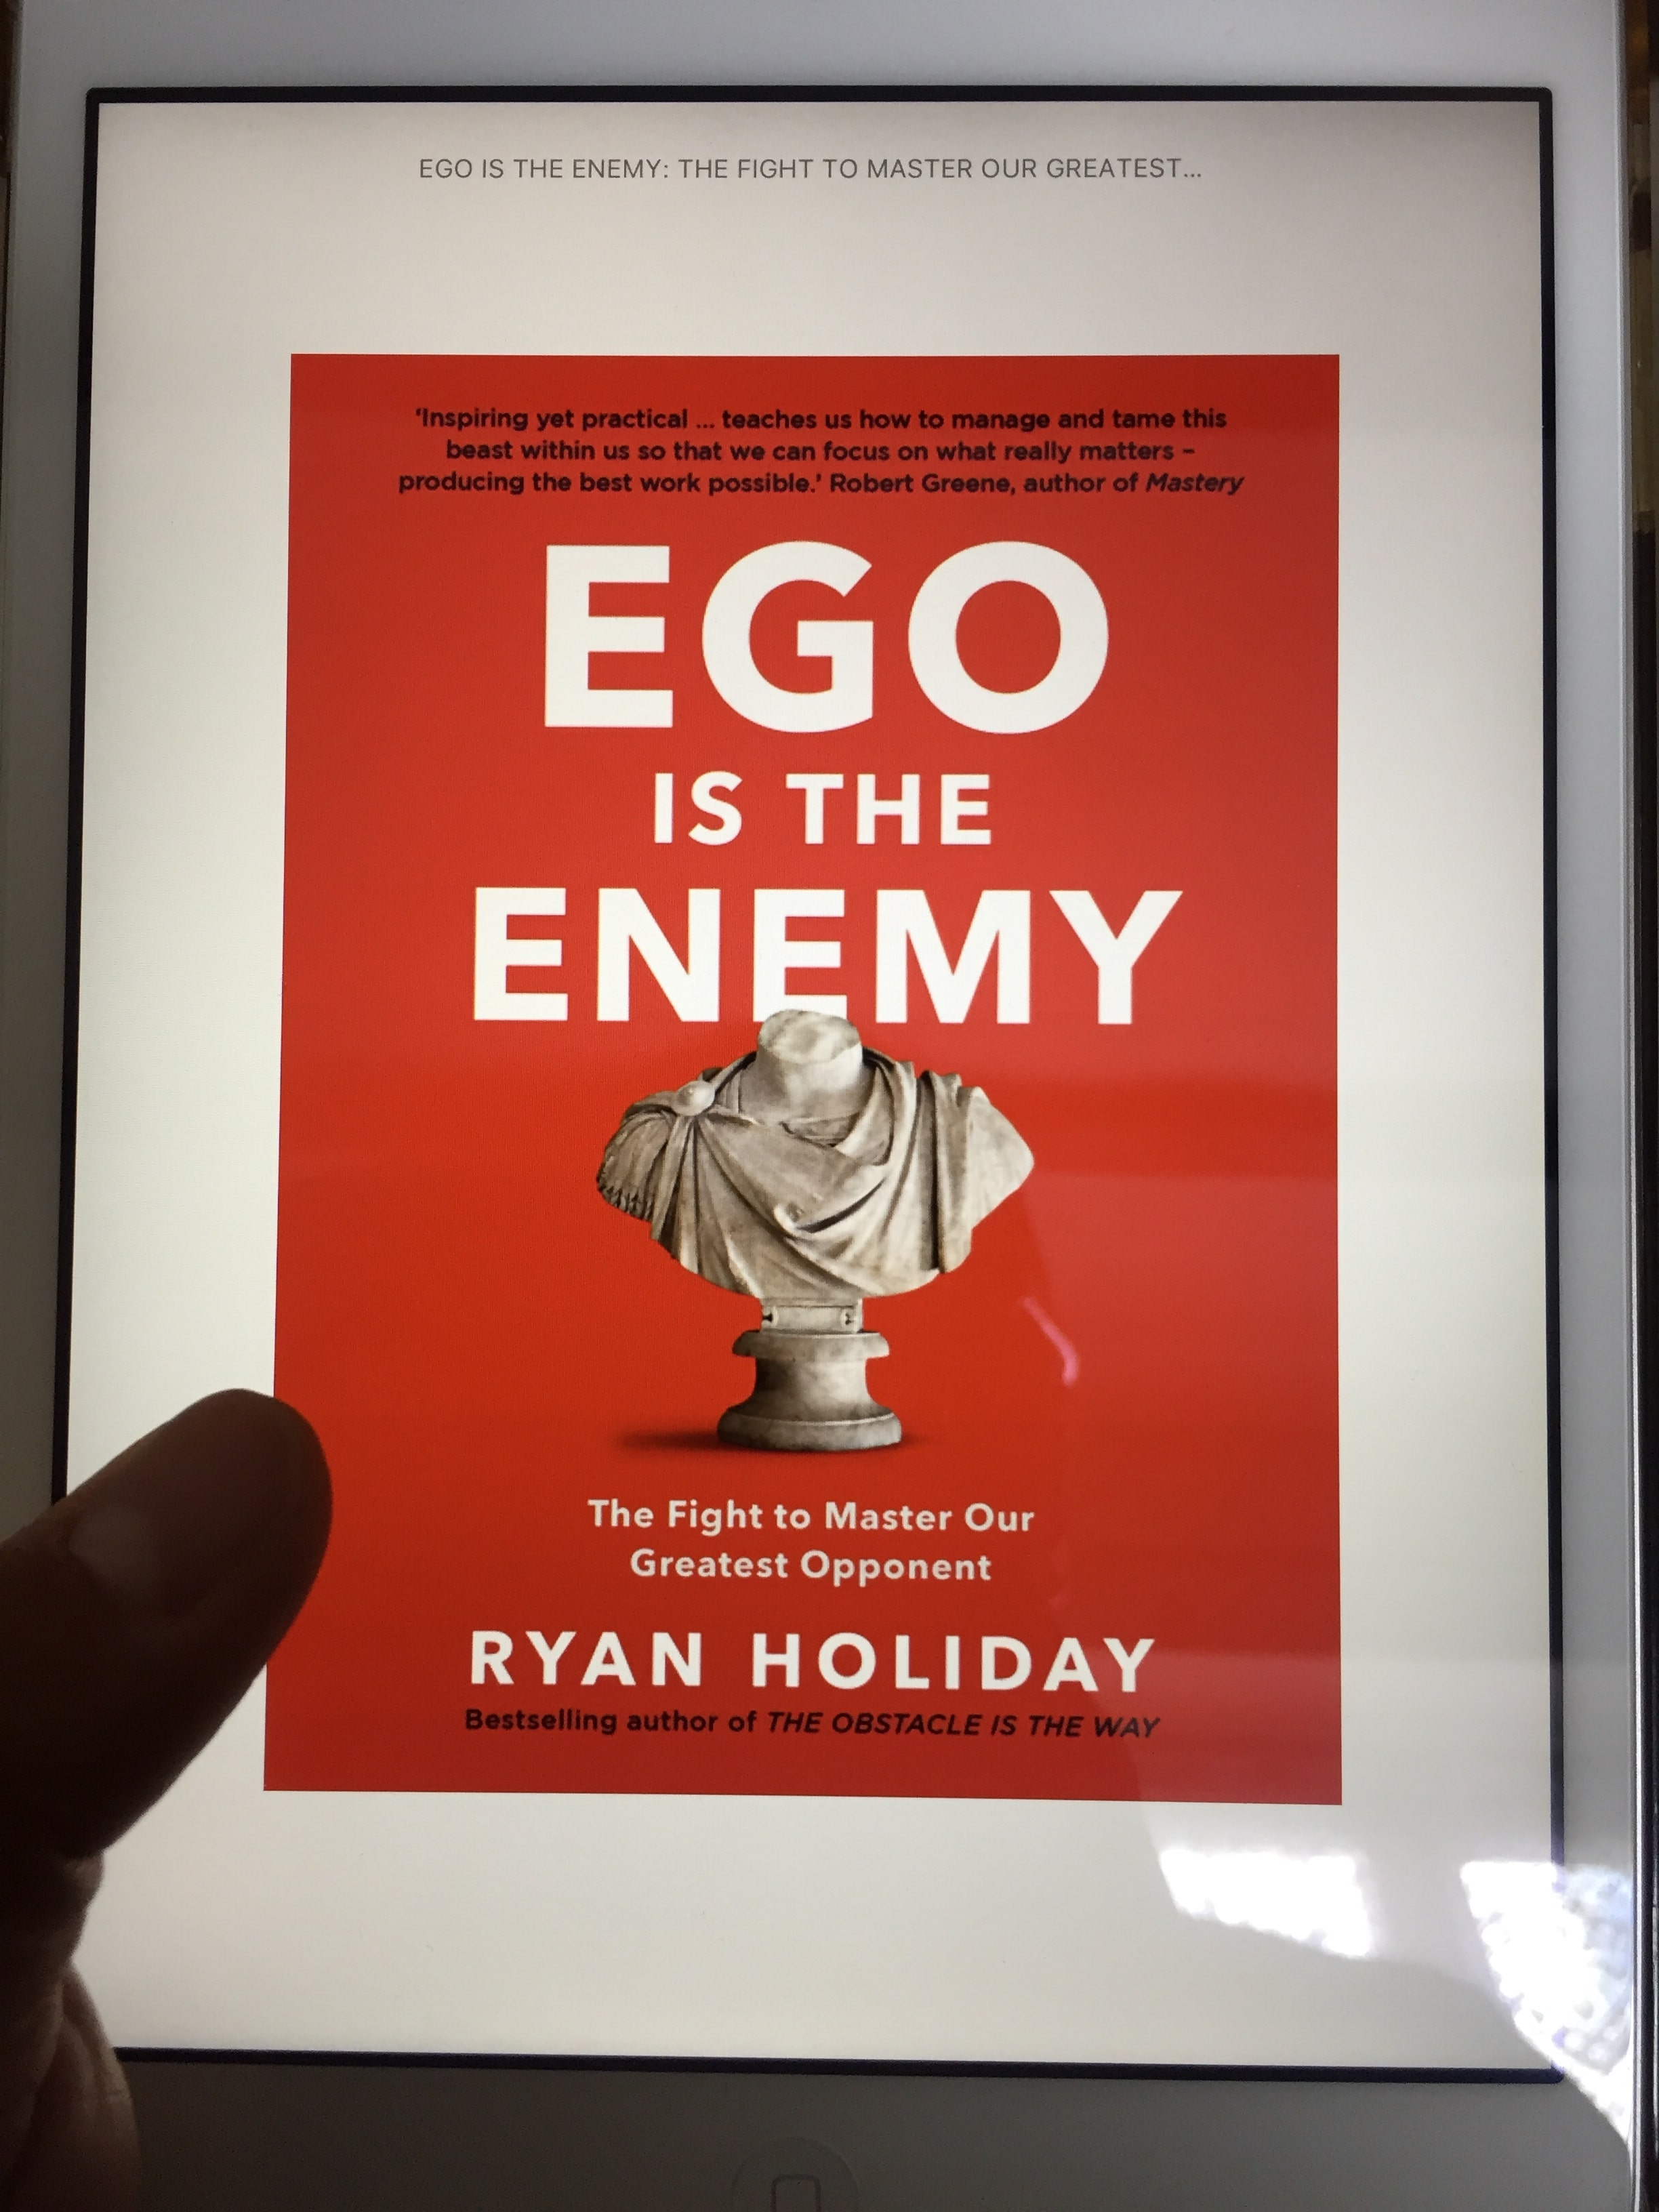 Ego is the Enemy by Ryan Holiday – key takeaways